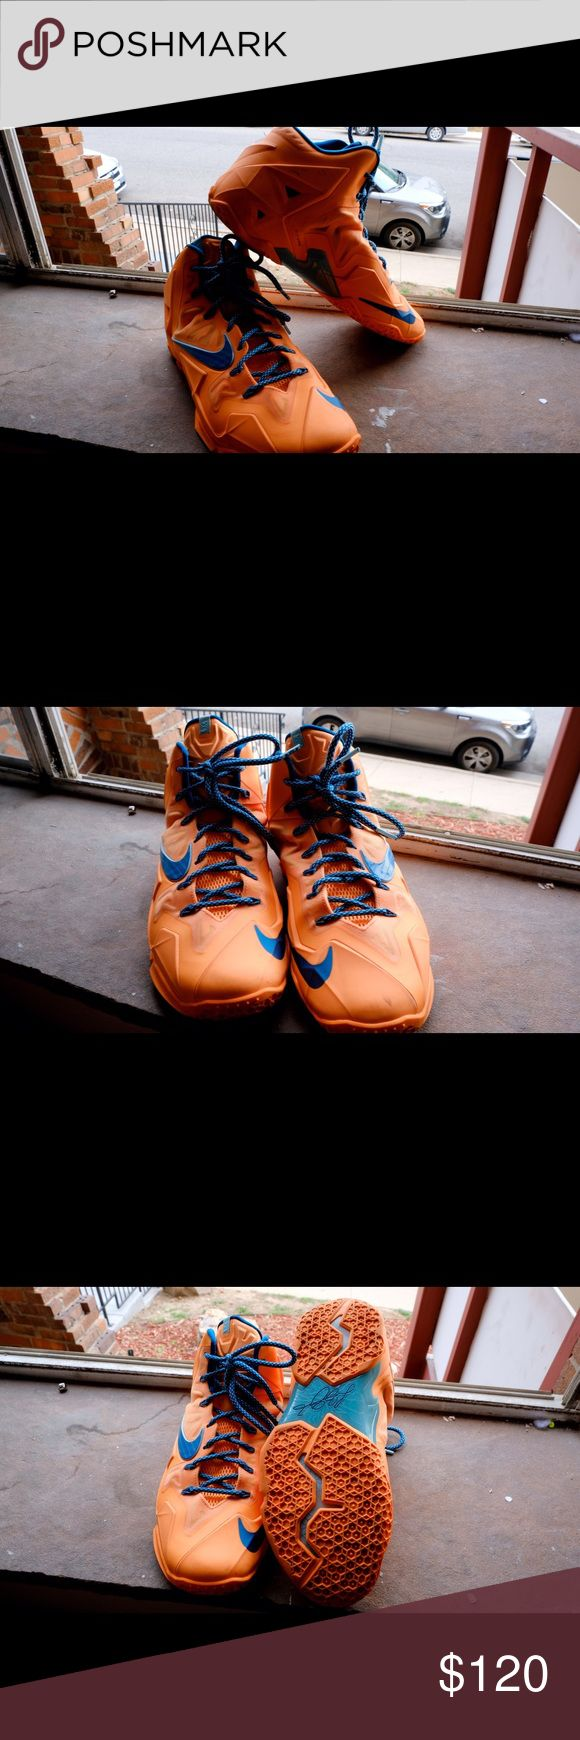 "Nike LeBron 11 ""Atomic Orange"" Size 11. Good traction and only some scratches. The bottom has discoloration, but no loss of traction or performance. Please comment if you have more questions. Nike Shoes Athletic Shoes"